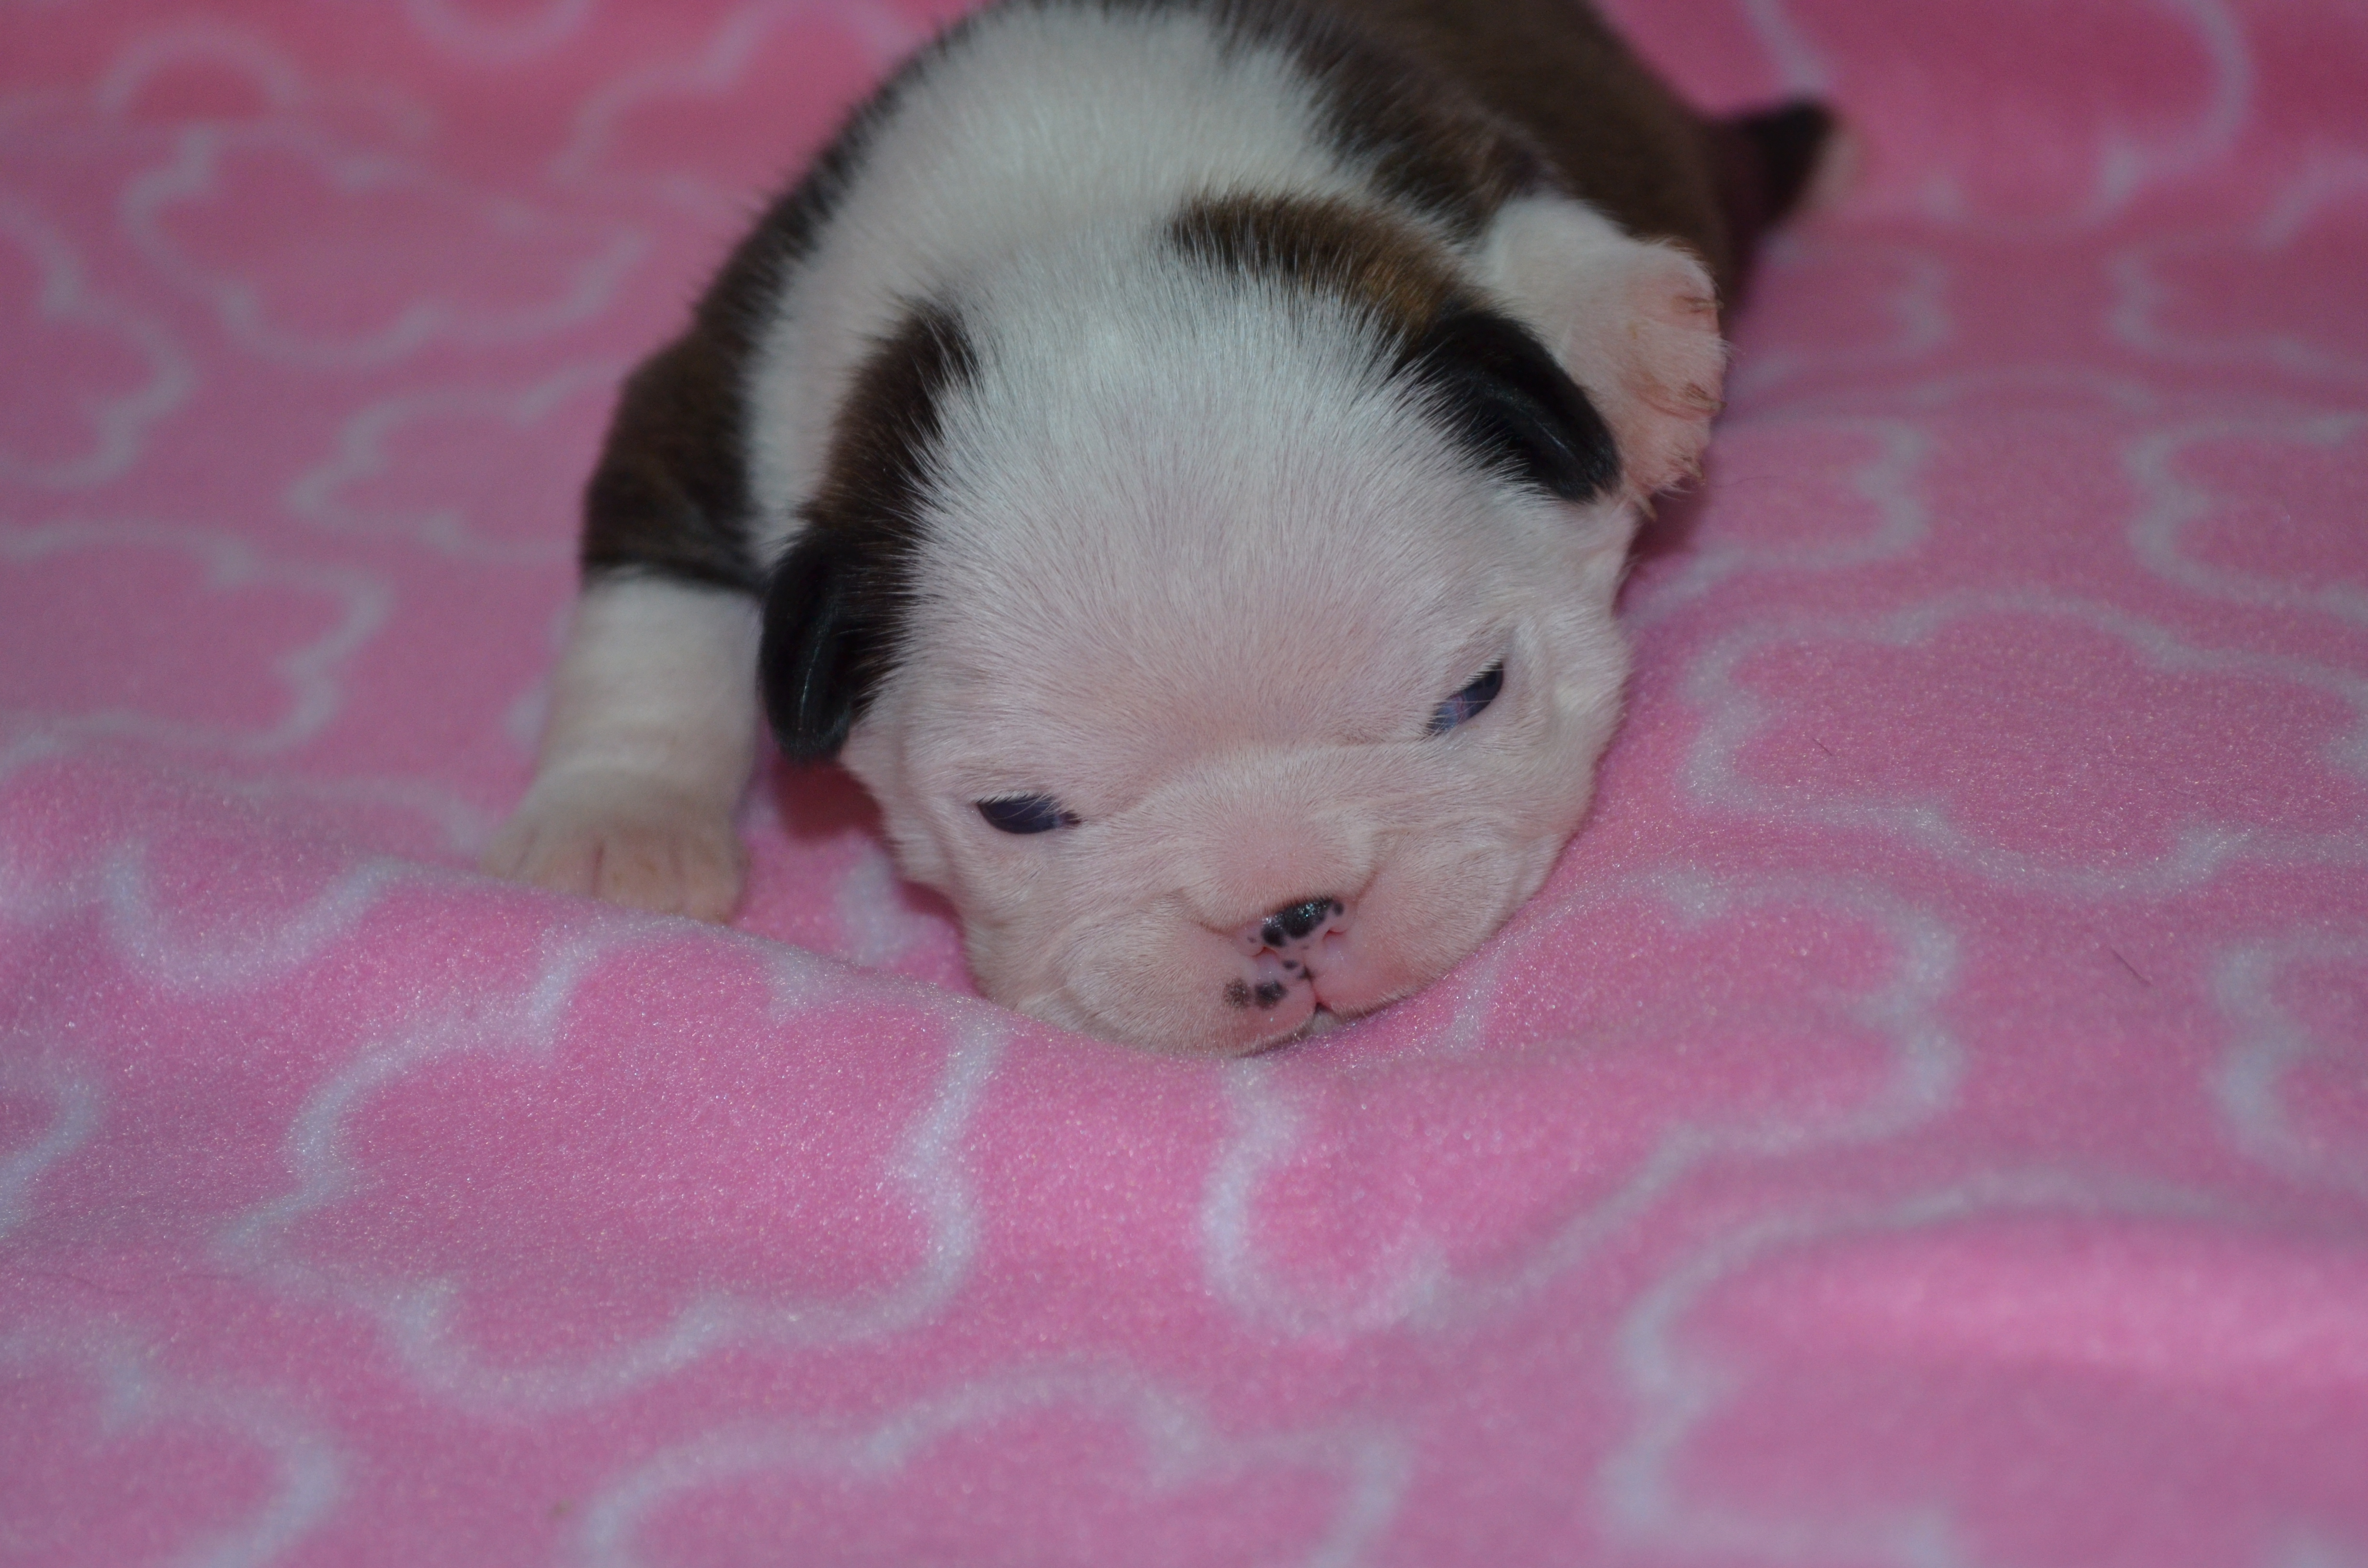 Two Weeks Old and Eyes are Open!